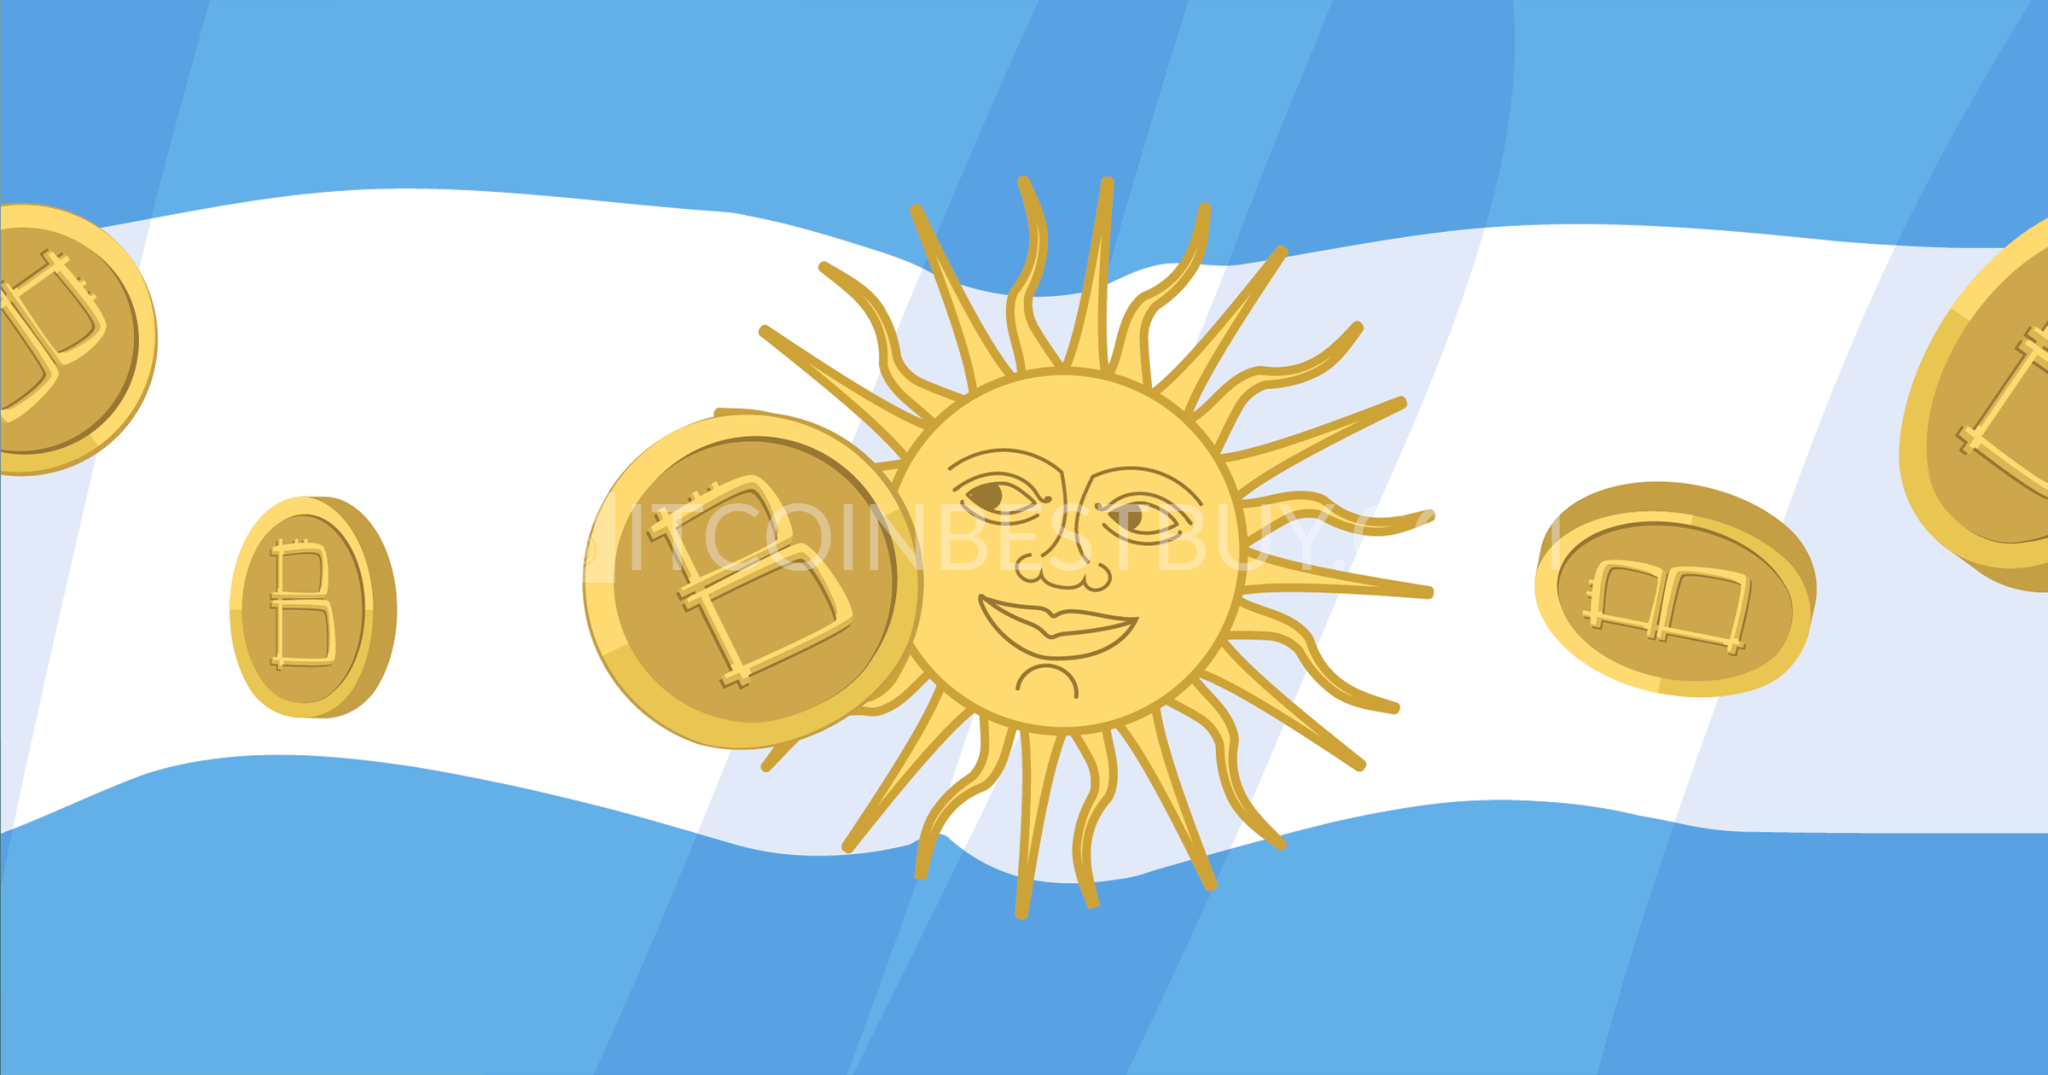 Tutorial to buy bitcoin in Argentina